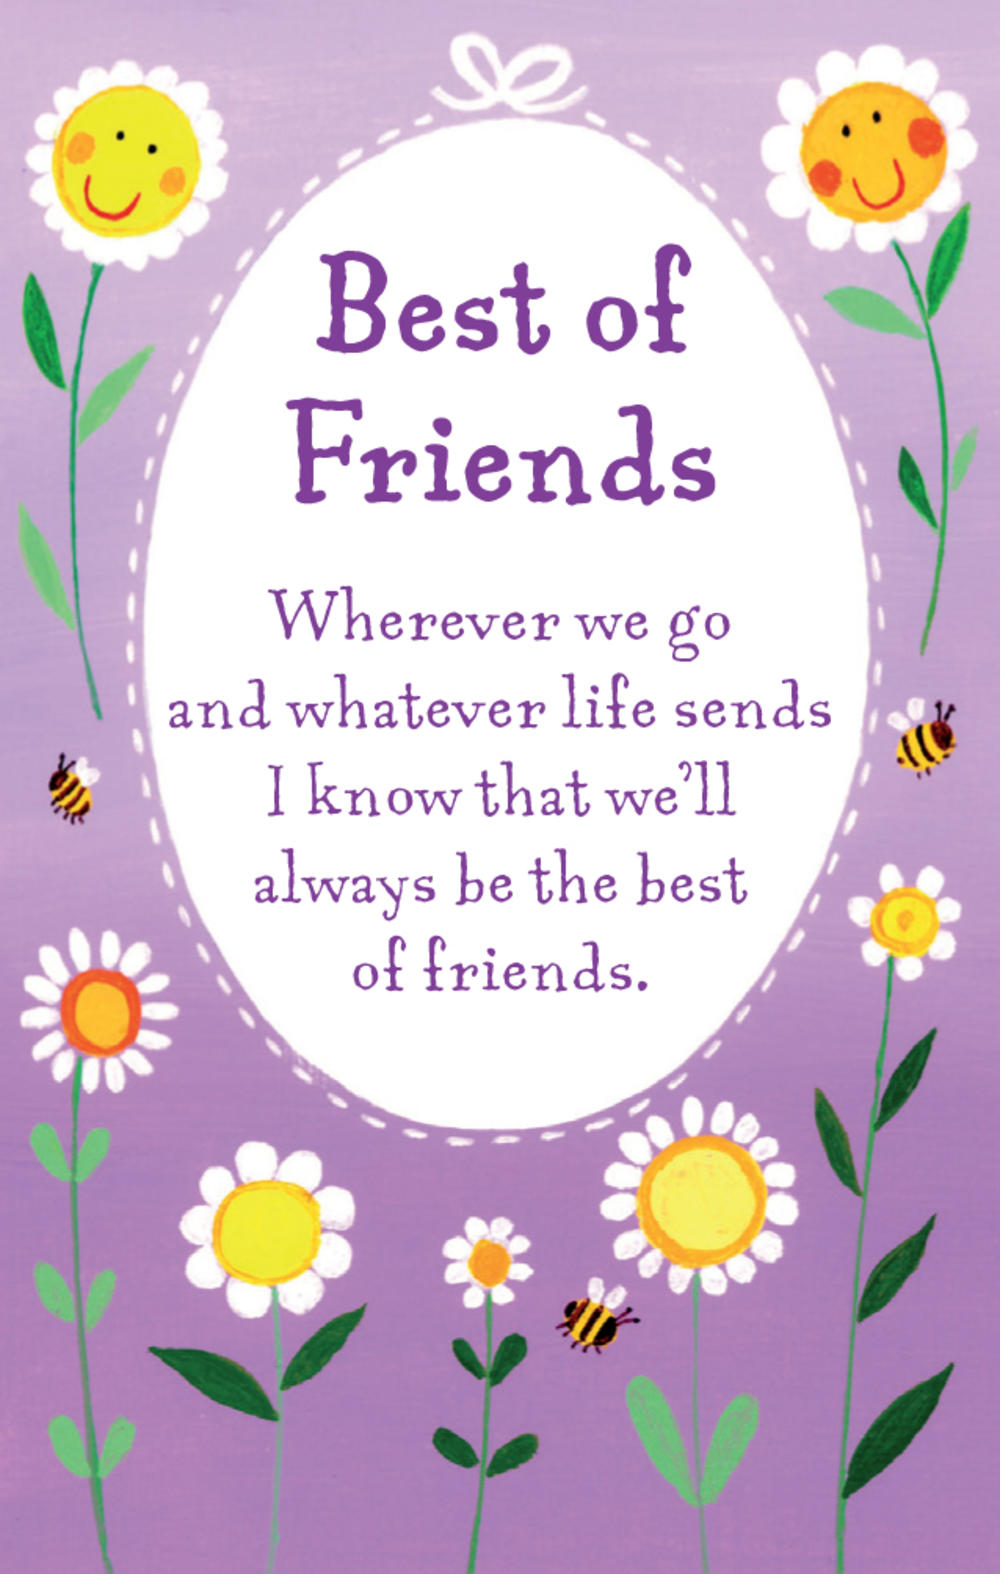 Best Of Friends Heartwarmers Keepsake Credit Card & Envelope